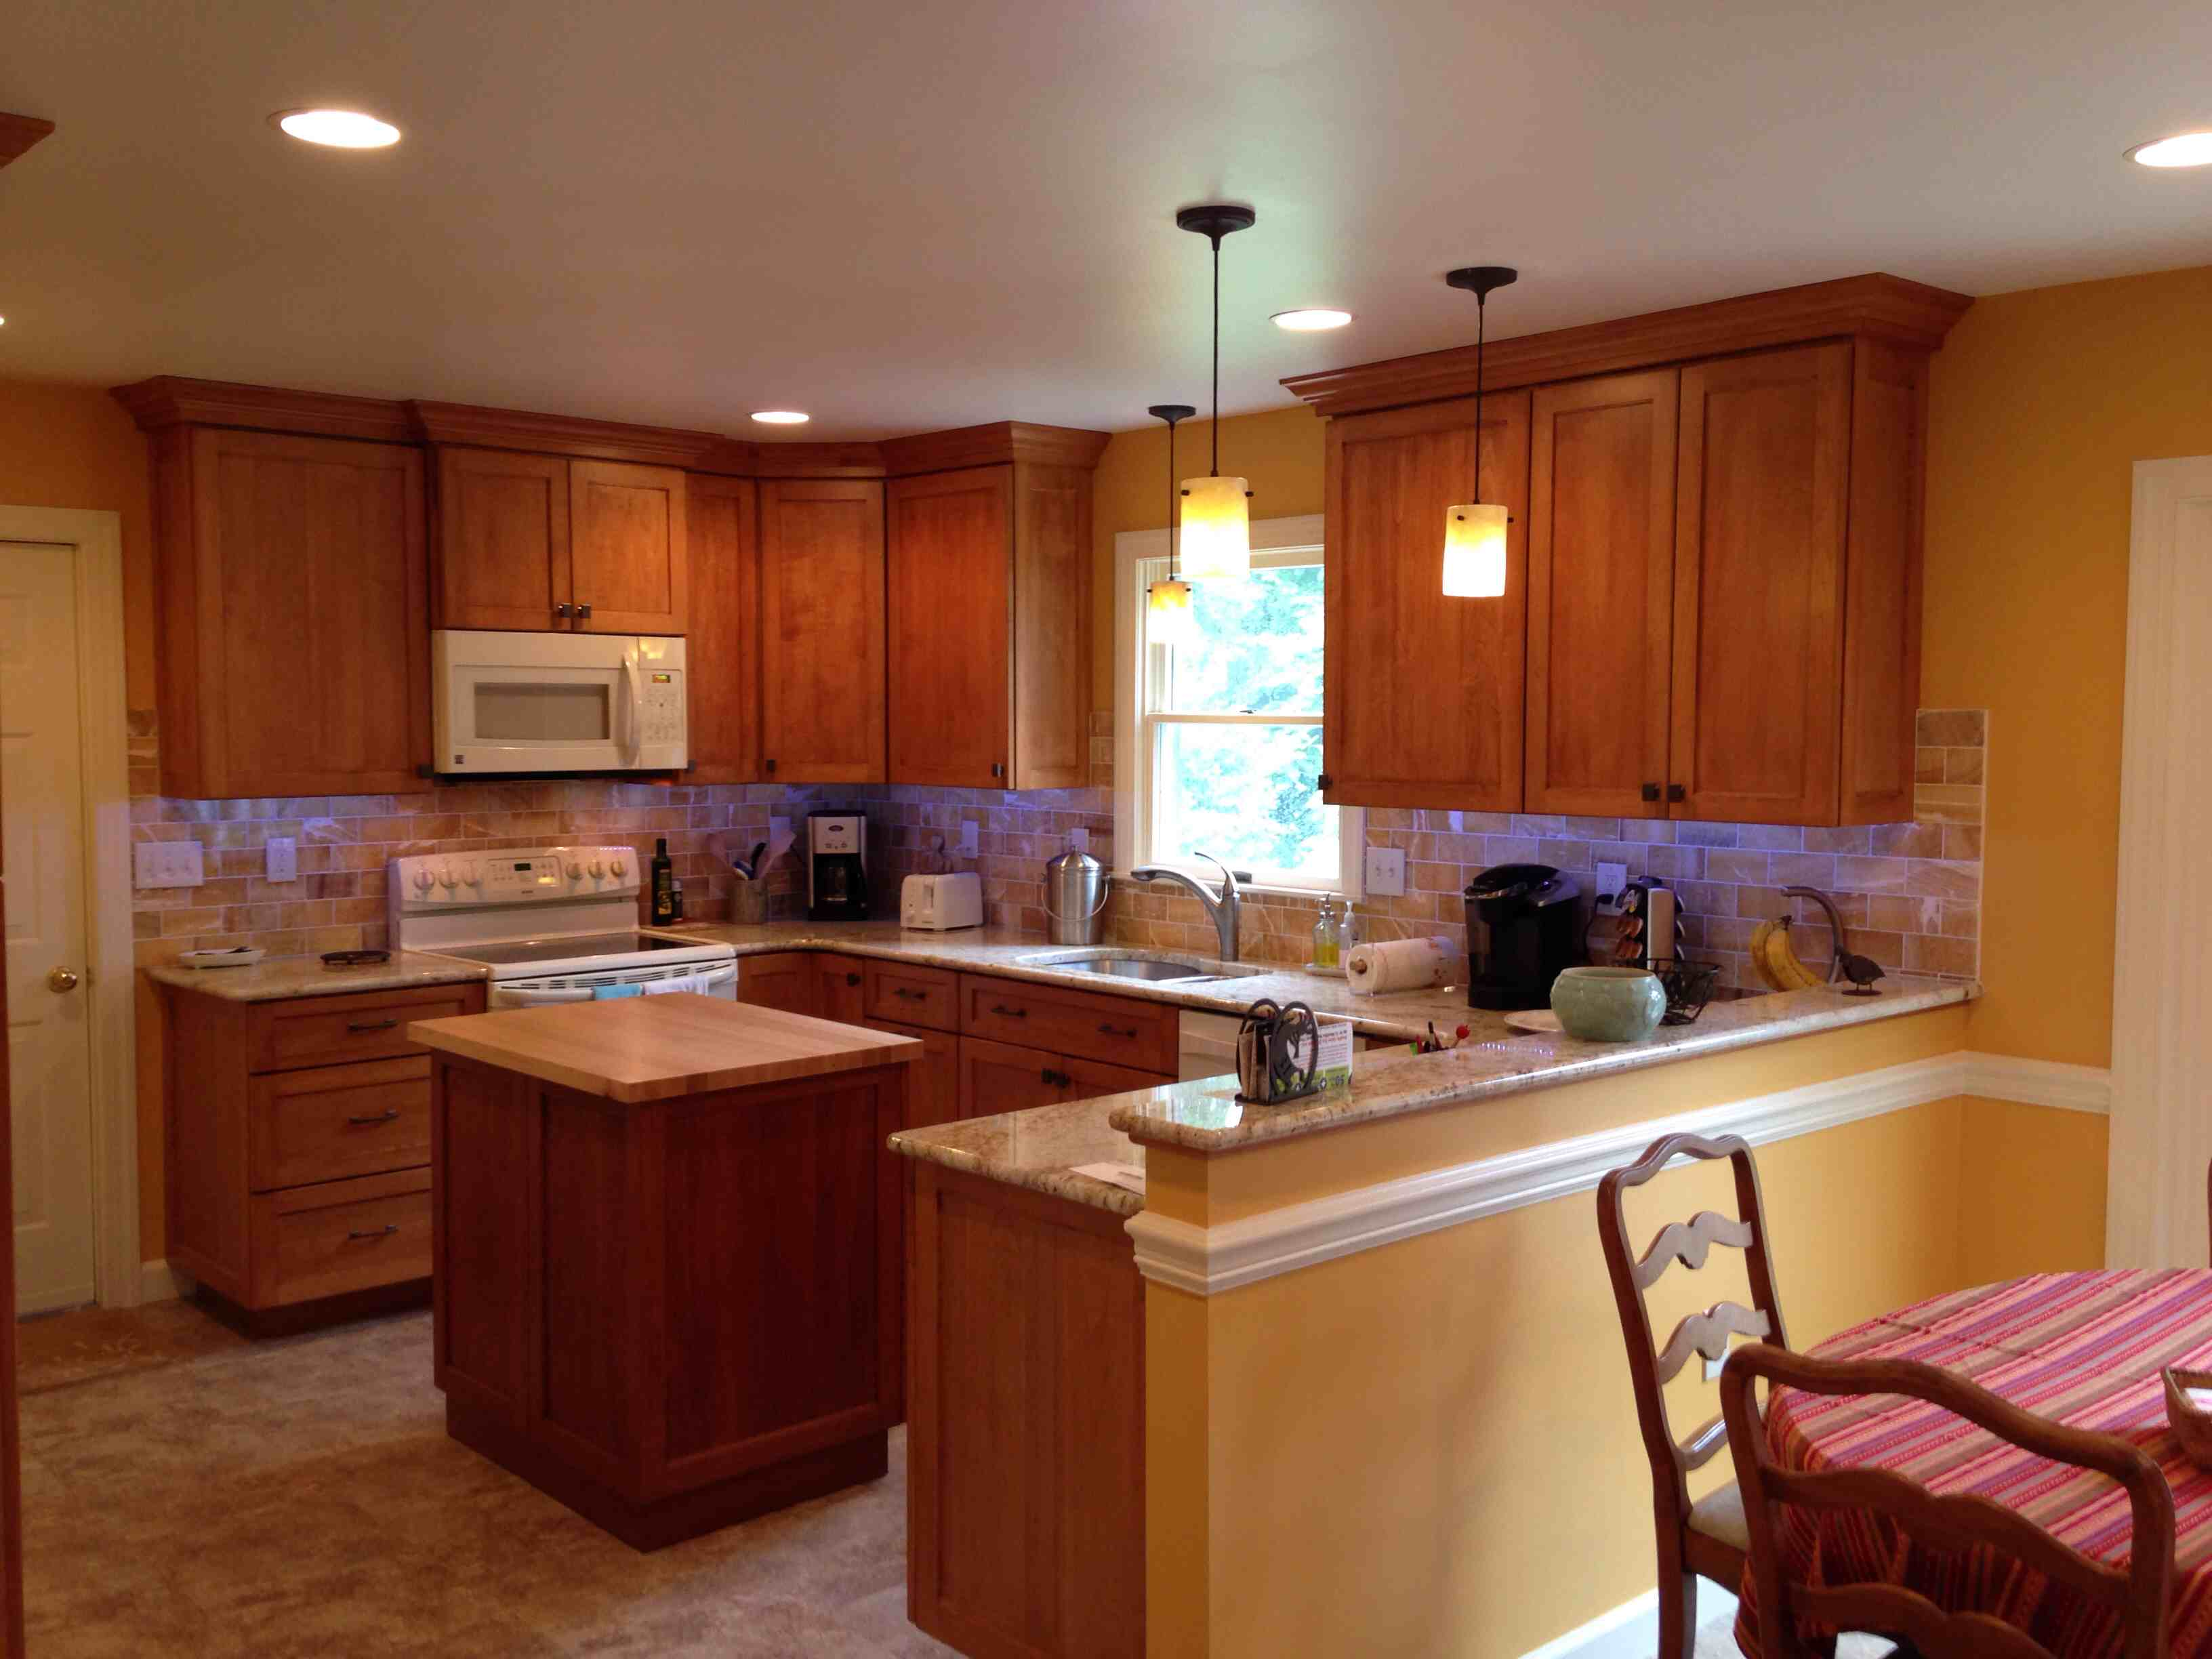 Complete Kitchens More Westminster Md 21157 Angies List